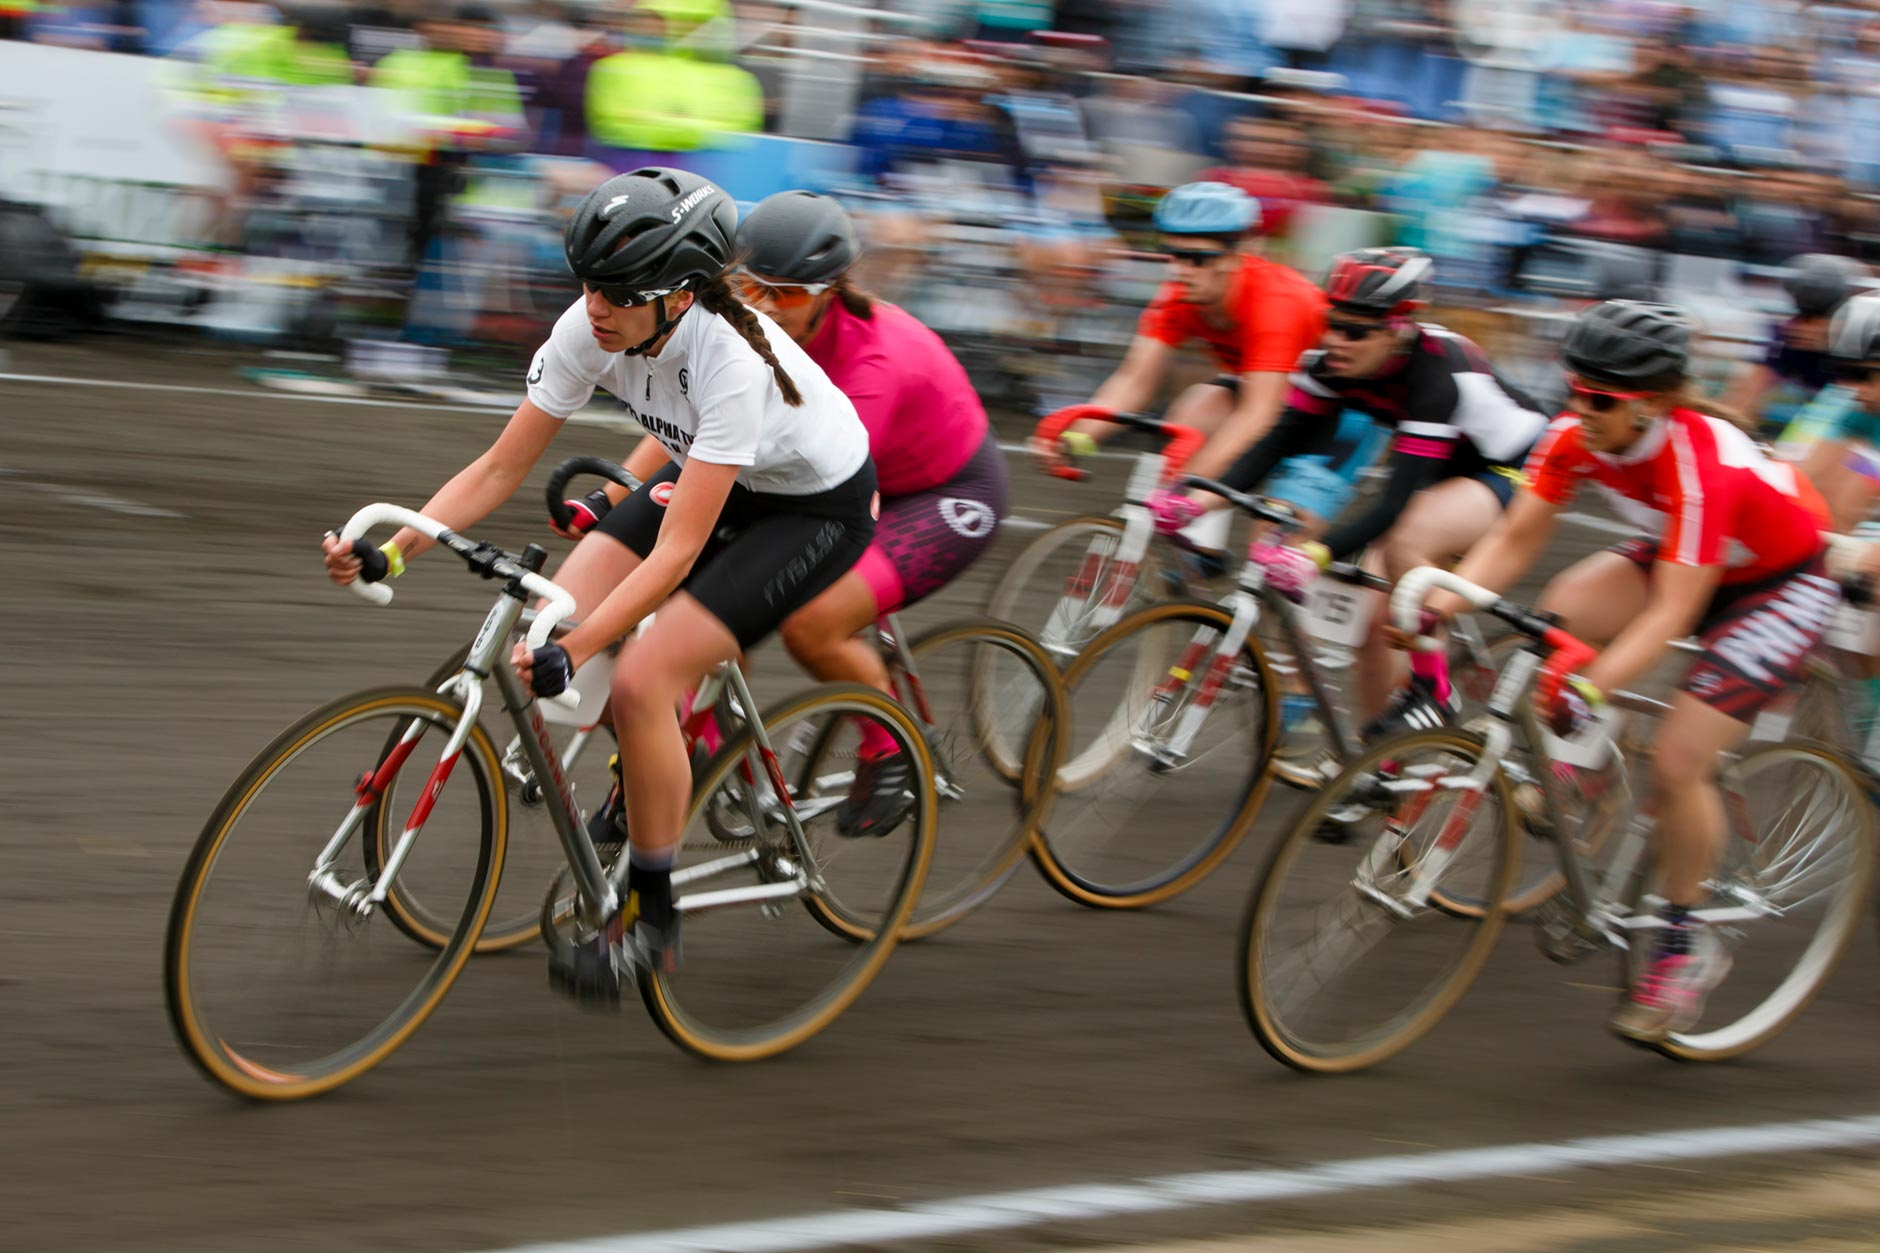 Kappa Alpha Theta's Evelyn Malcomb, left, leads a pack of riders during the Women's Little 500 at Bill Armstrong Stadium on Friday, April 21, 2017. (James Brosher/IU Communications)